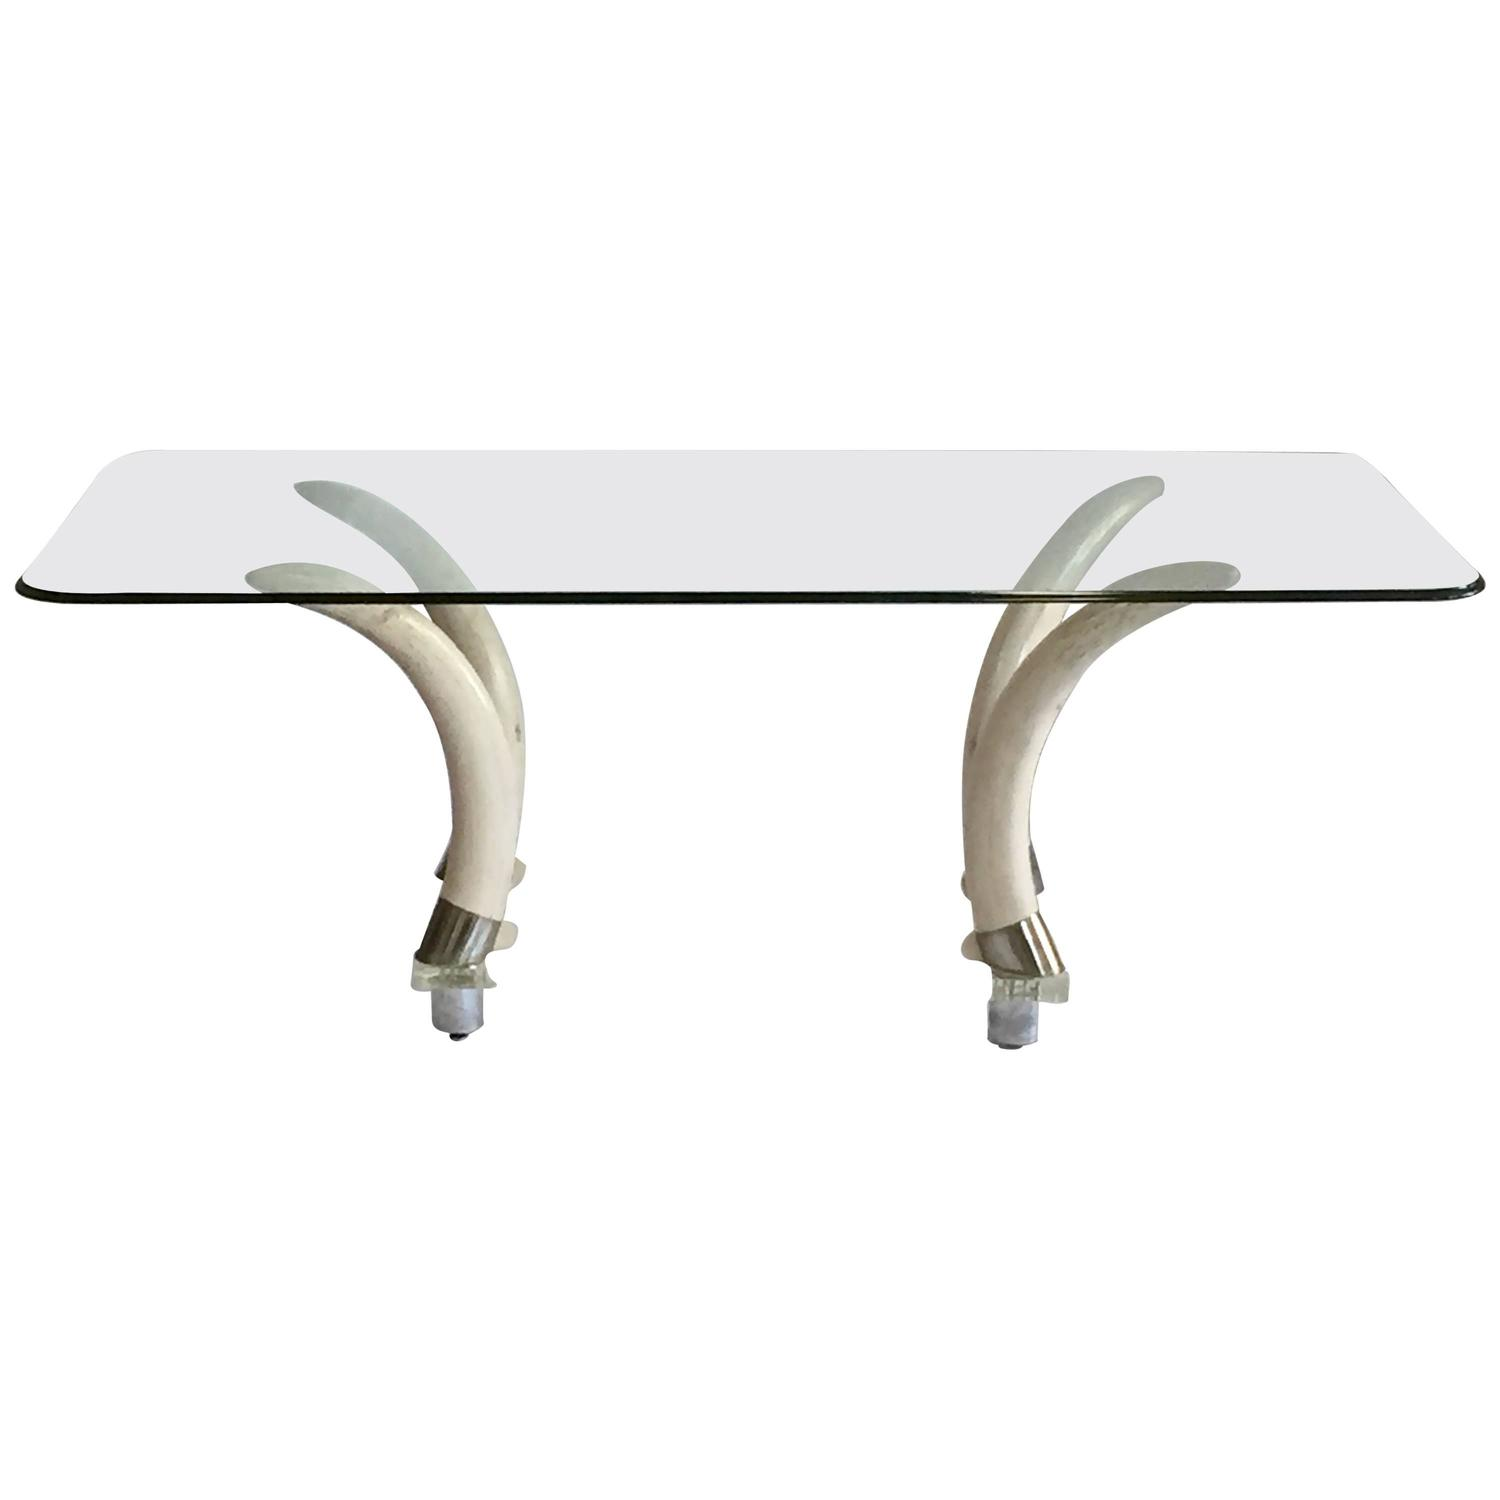 1970s Faux Elephant Tusk and Lucite Base Glass Top Table at 1stdibs